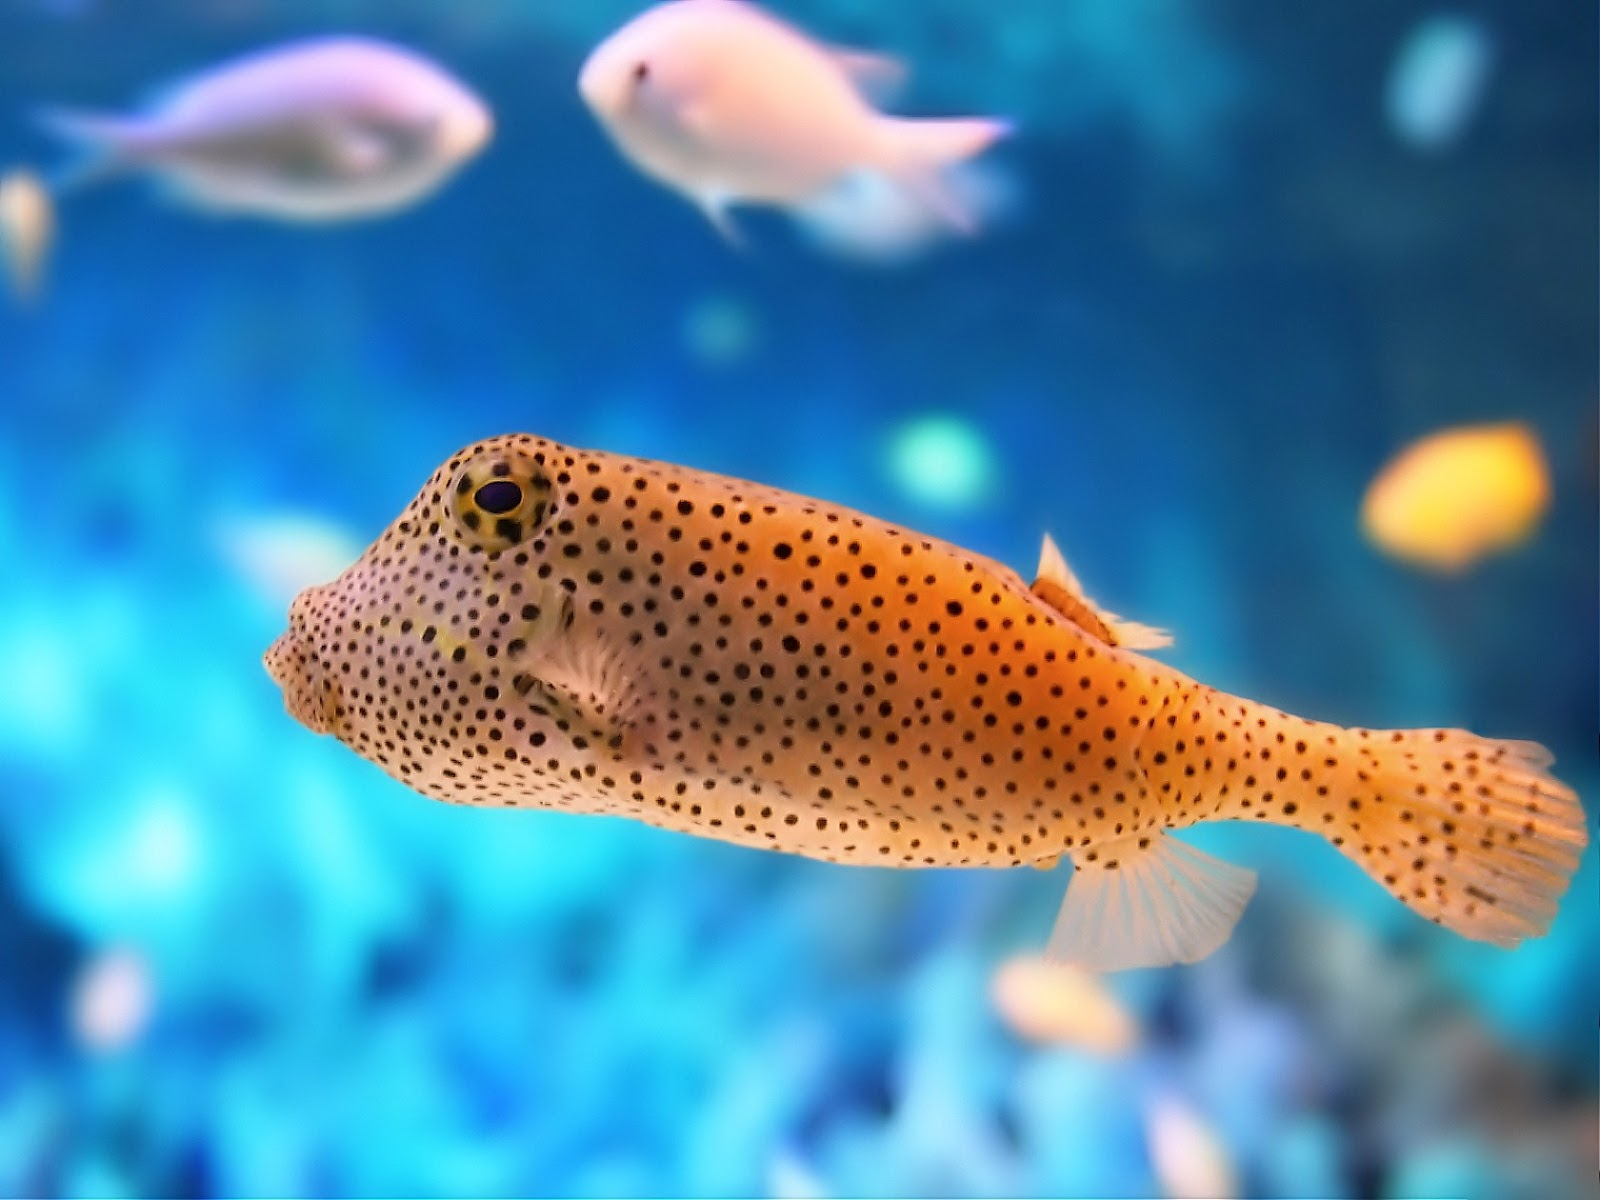 Fish HD Wallpapers - Amaxing